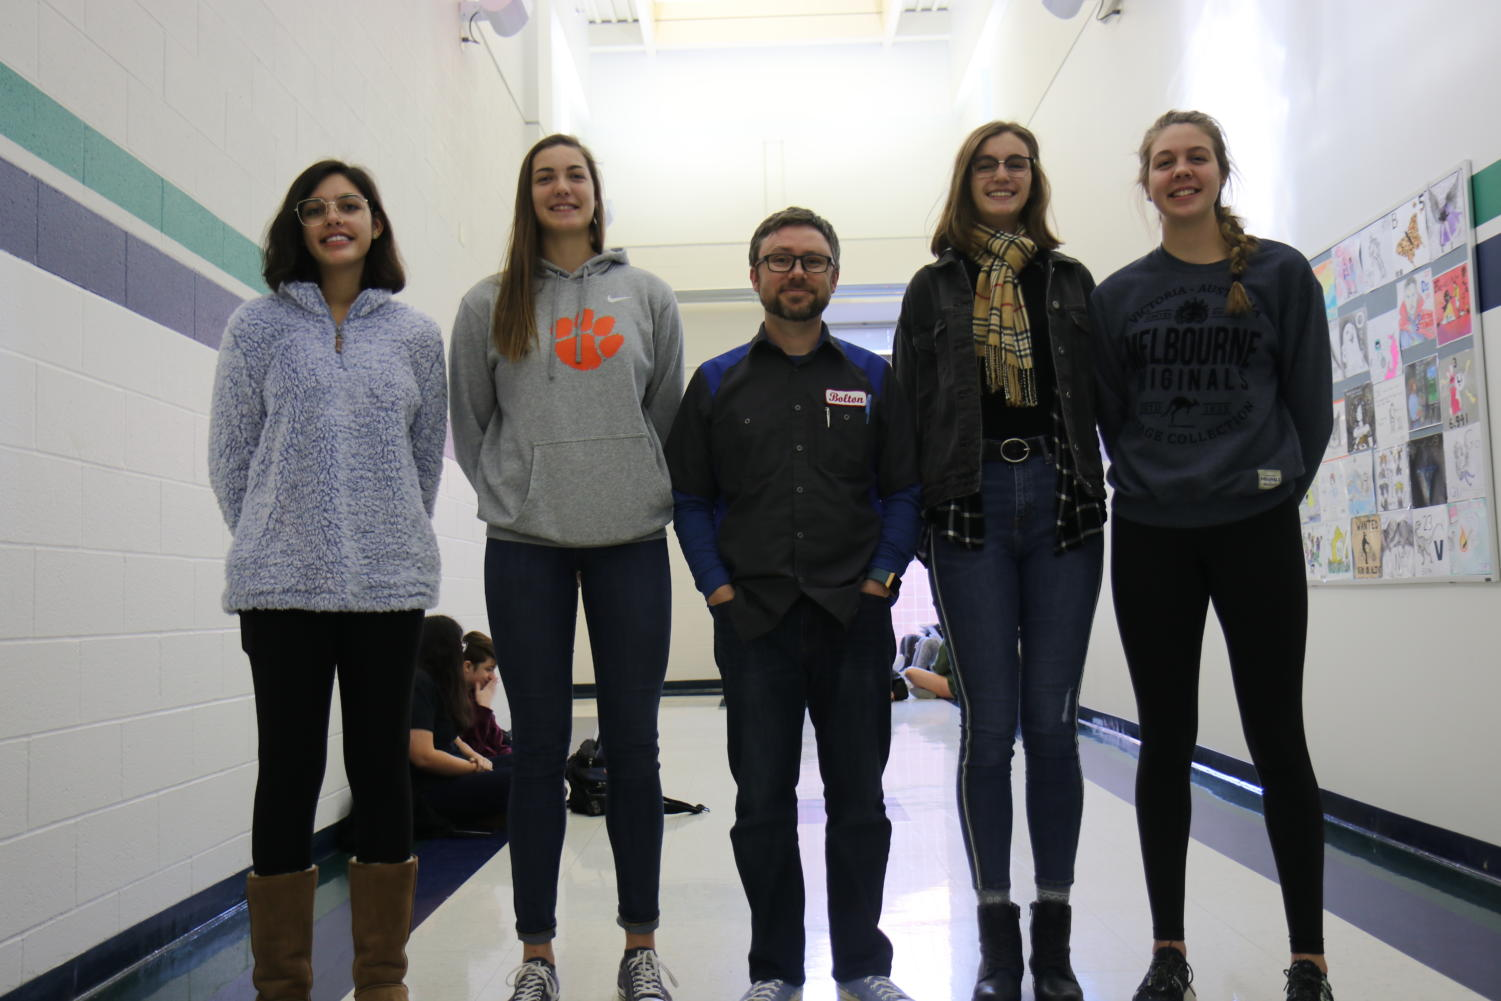 Zoë Malik, junior, stands on the left next to Ally Fitzgerald, sophomore. Katie Weiss, senior, poses on the far right, with Kira Mangan, senior, on the left of her. Ed Bolton, chemistry teacher, is 5' 7